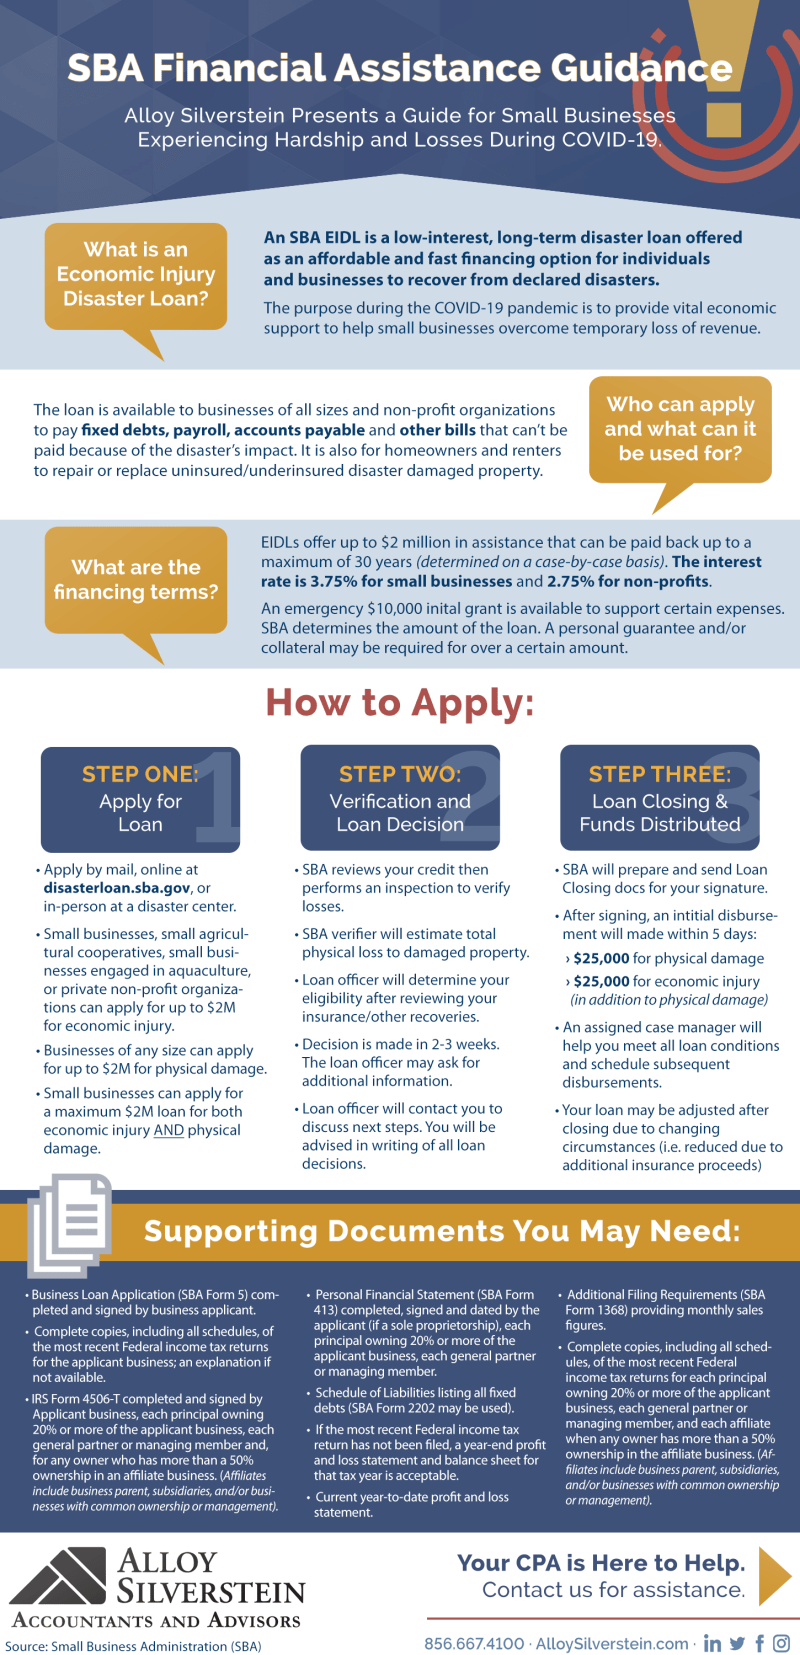 SBA Step-by-Step How to Apply Guide for Business Covid-19 Financing